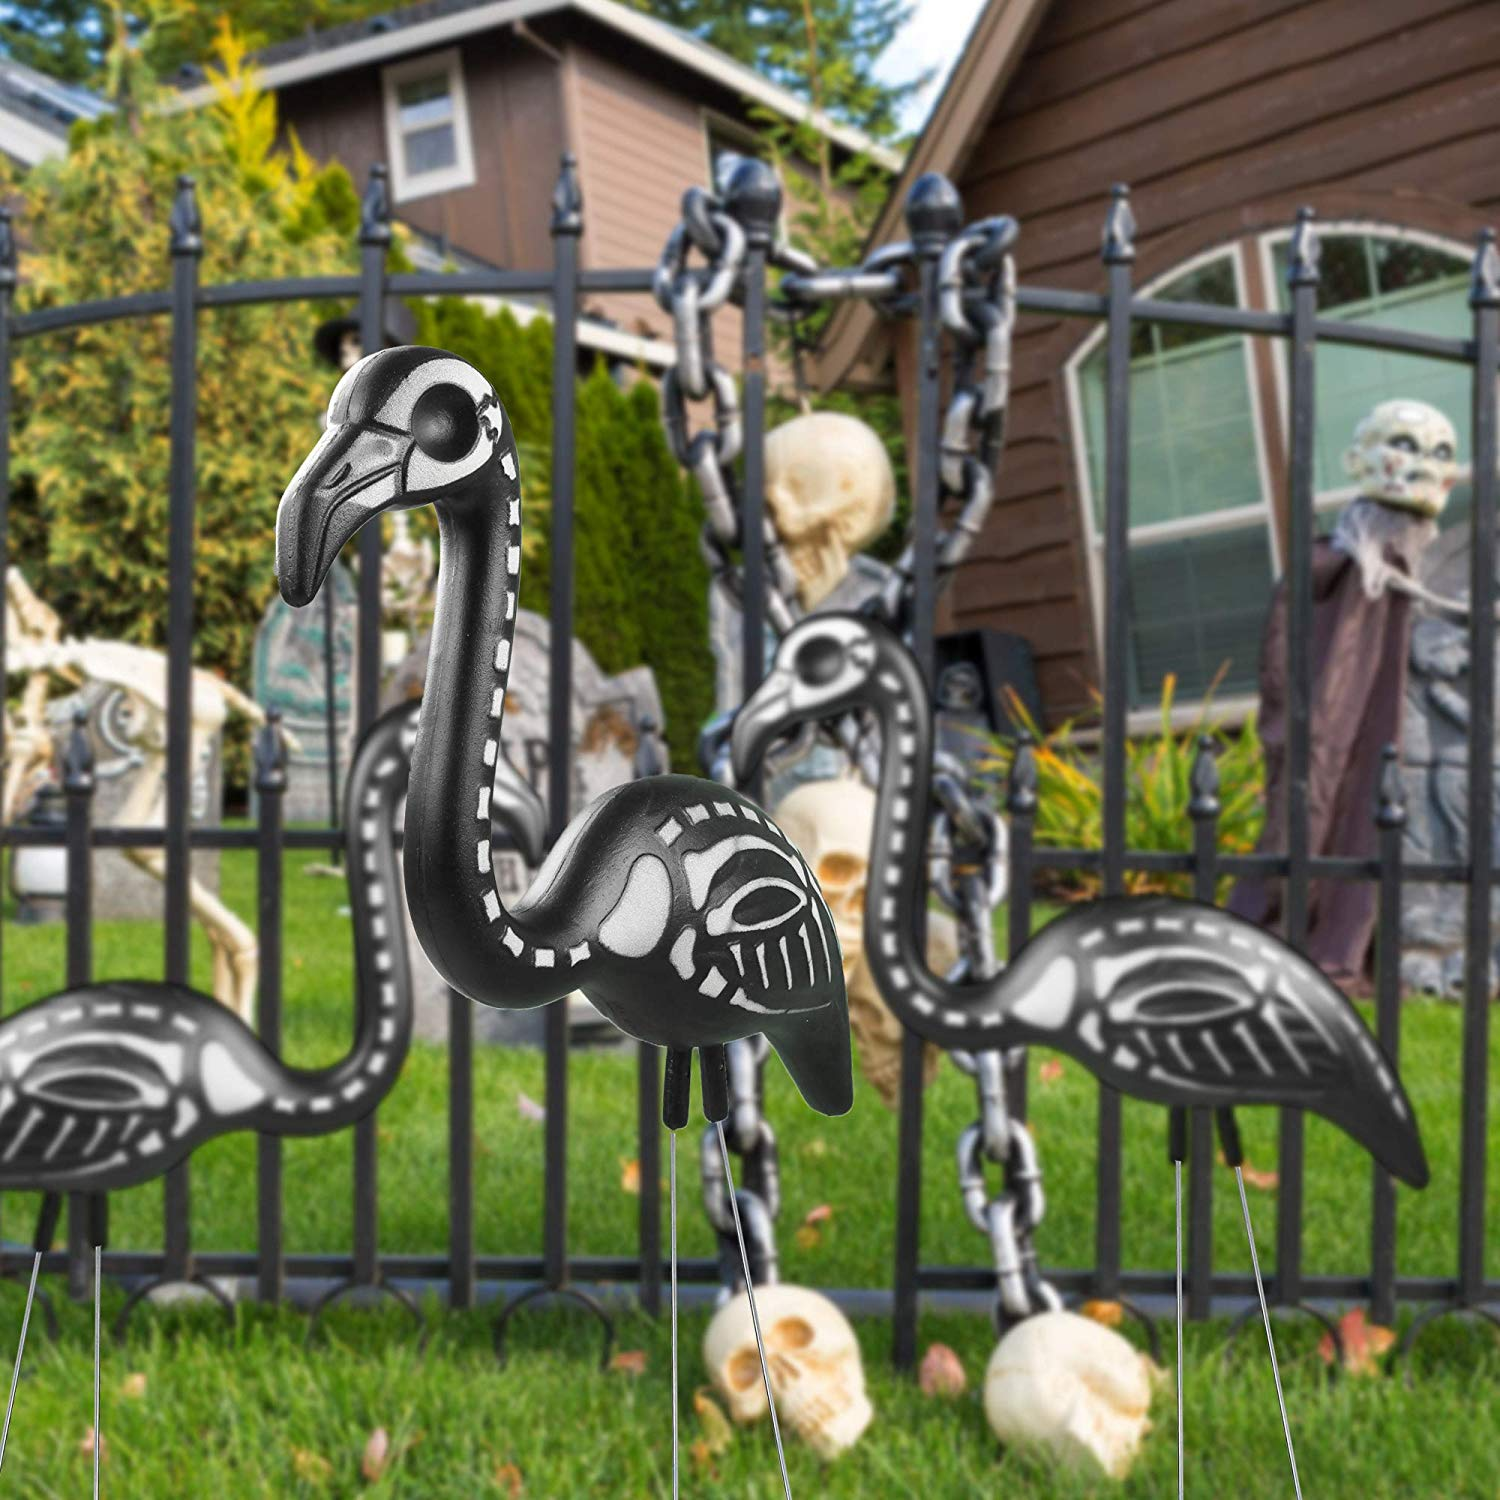 Zombie Lawn Flamingos Will Make Your Front Yard So Spooky This Halloween